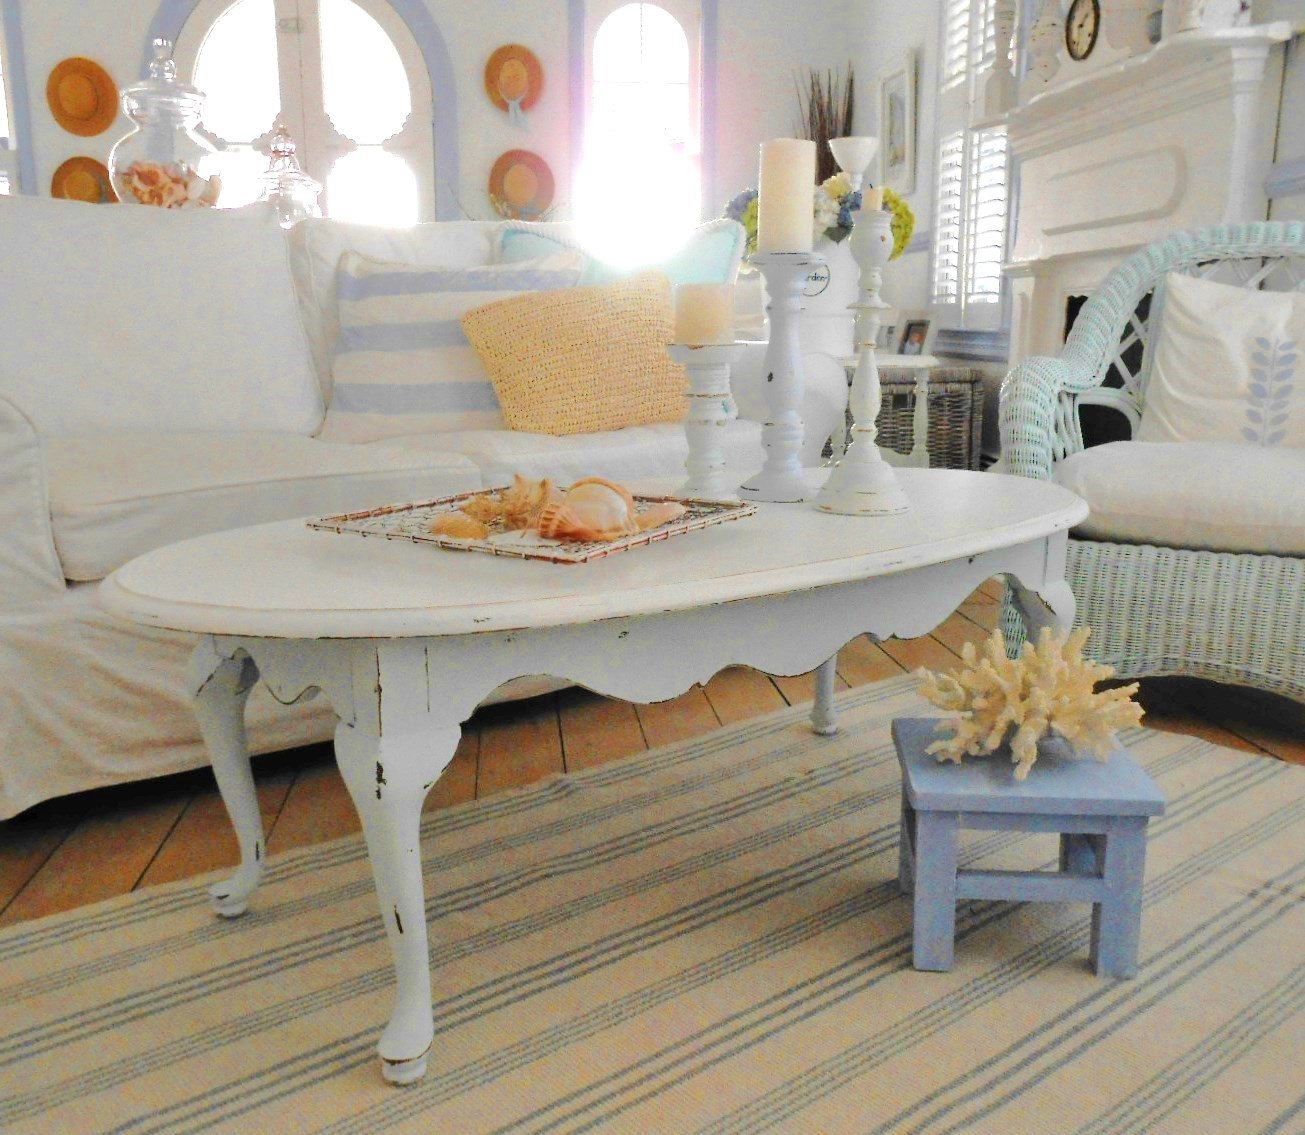 Coffee Table Shabby Chic Furniture Painted Beach Cottage Shabby Chic Furniture Furniture Shabby Chic Coffee Table